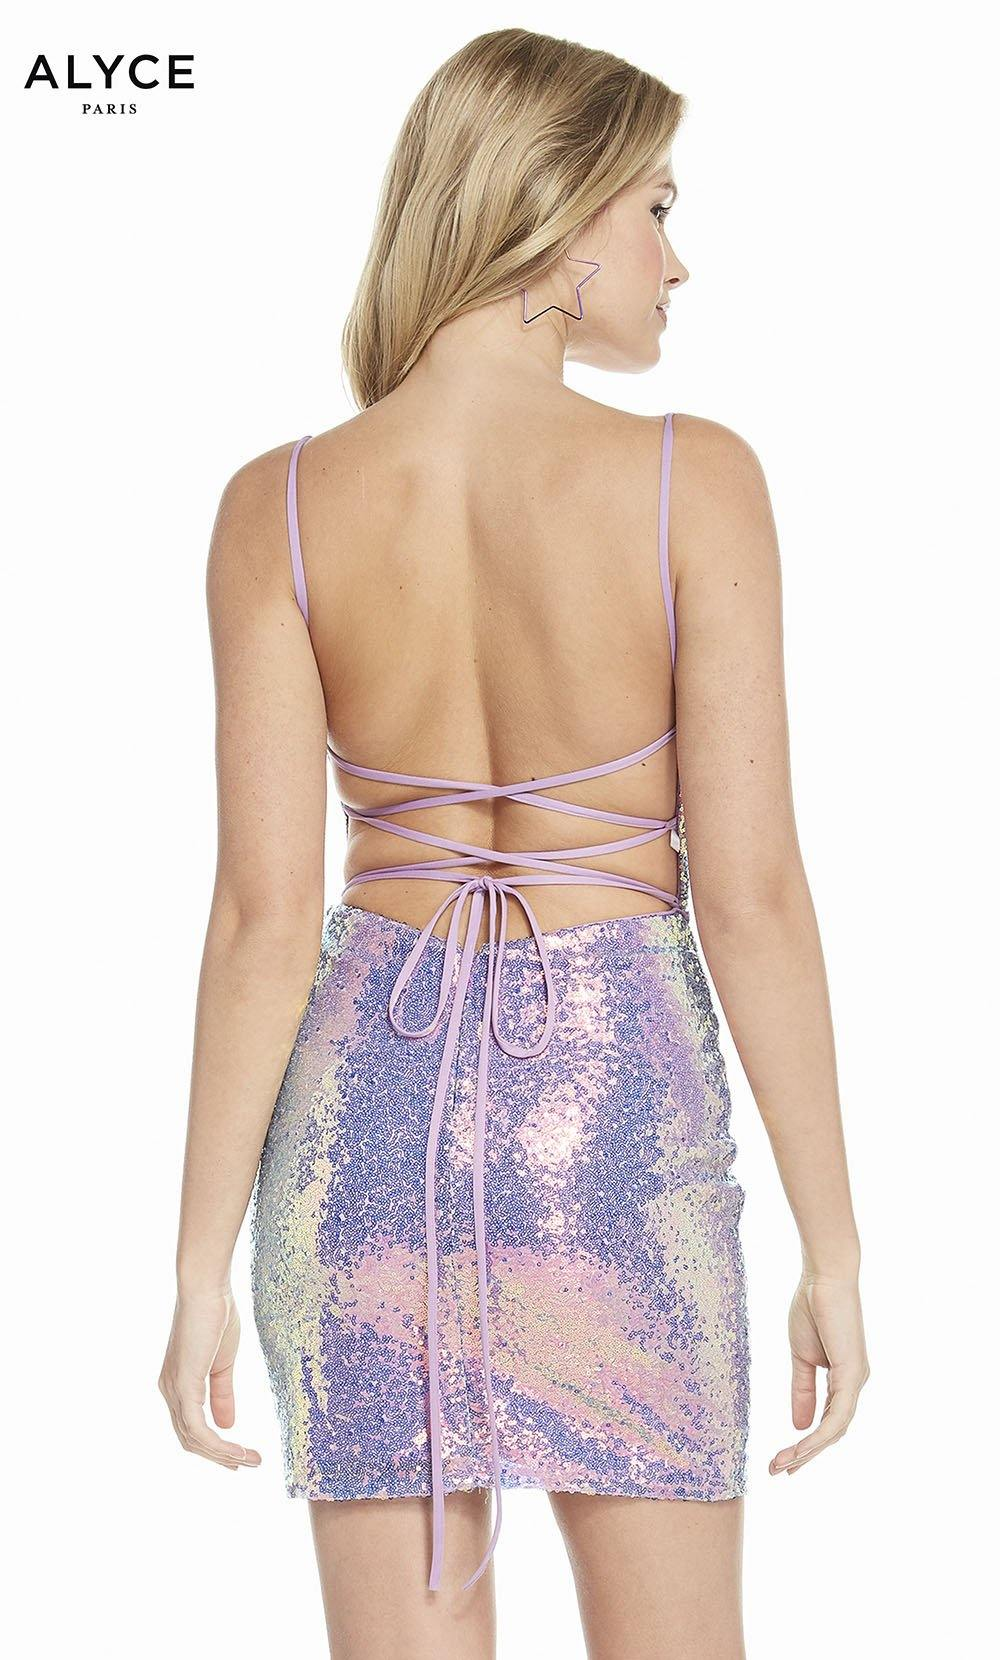 Alyce 4201 short sequins dress with a strappy back